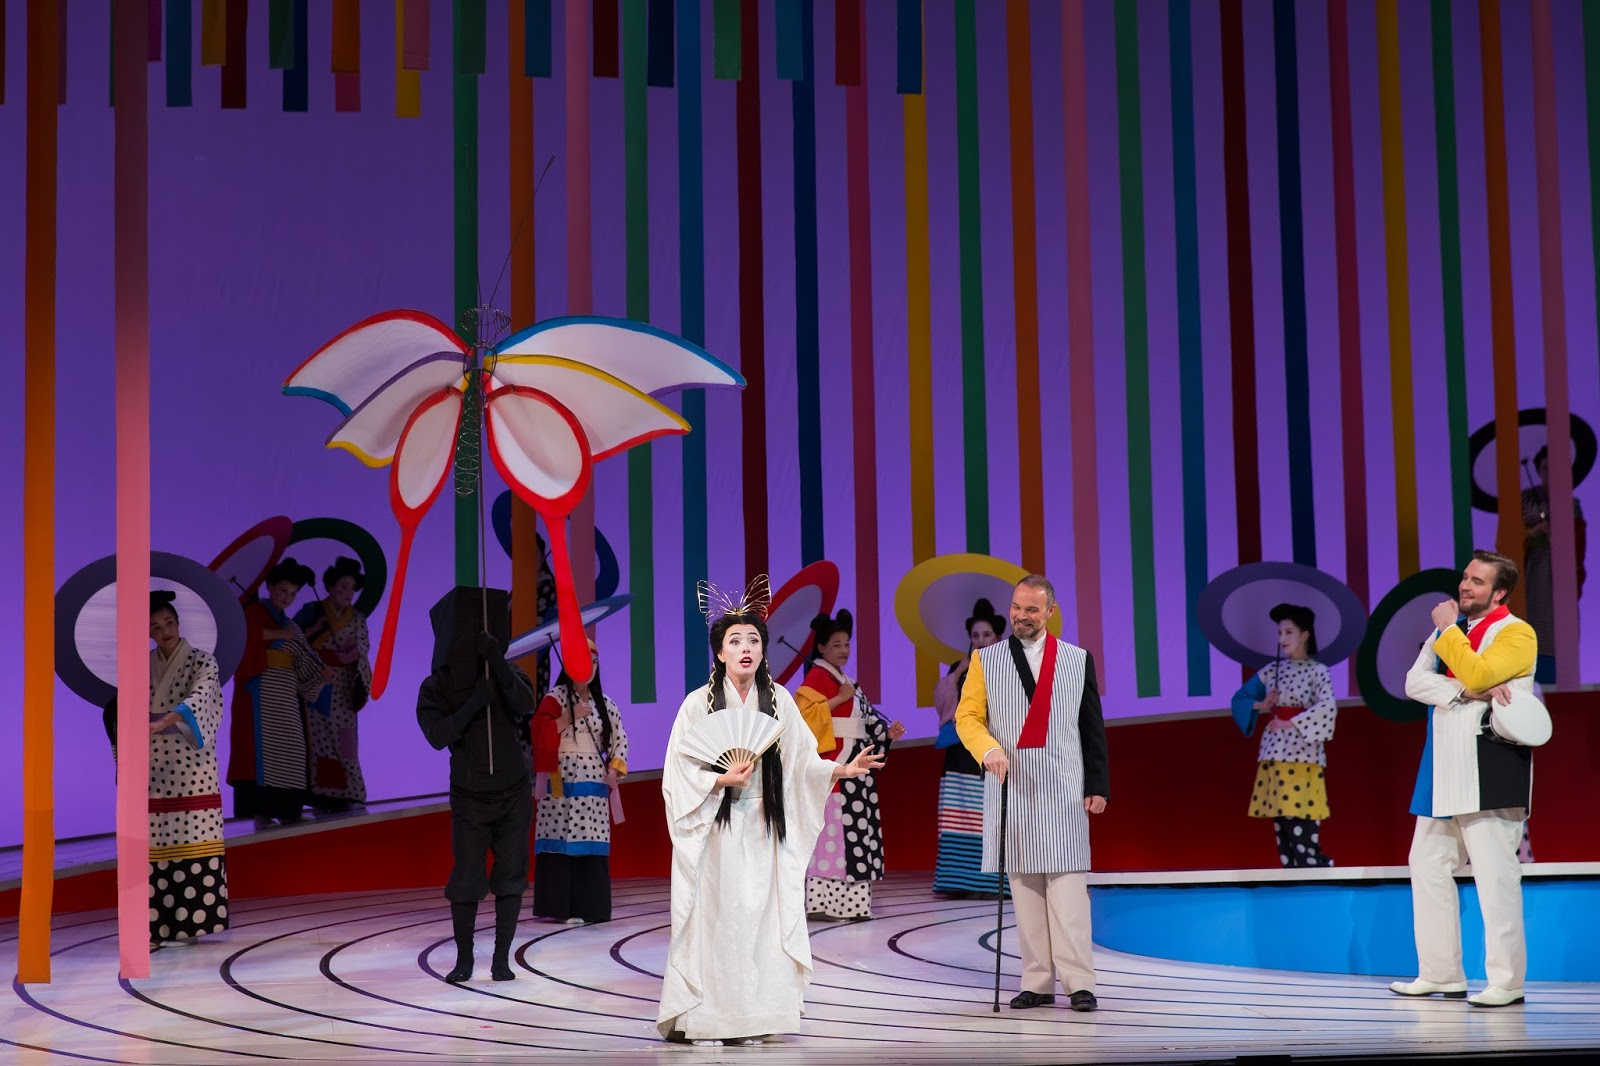 IN PERFORMANCE: (from left to right) Soprano ERMONELA JAHO as Cio-Cio-San, baritone TROY COOK as Sharpless, and tenor BRIAN JAGDE as Benjamin Franklin Pinkerton in Washington National Opera's production of Giacomo Puccini's MADAMA BUTTERFLY, May 2017 [Photo by Scott Suchman, © by Washington National Opera]